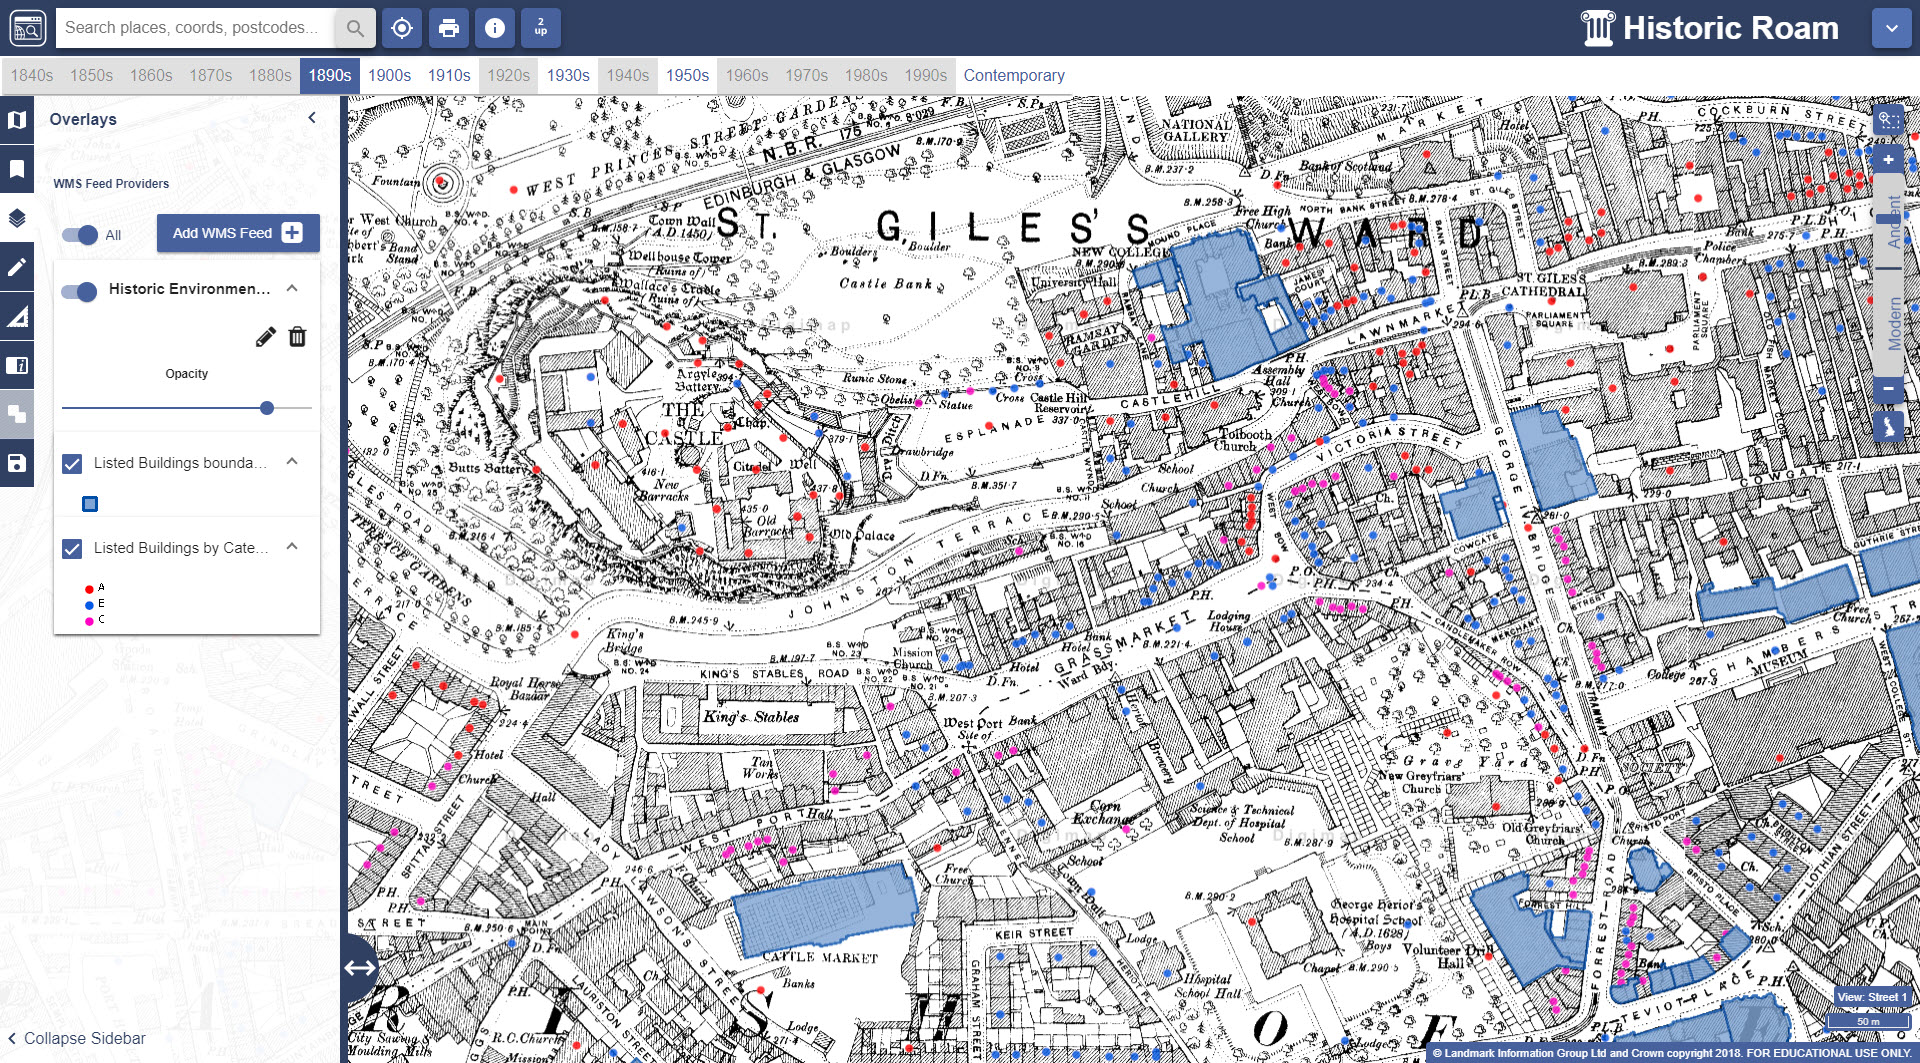 Listed buildings pulled via WMS on top of historic map from 1896 in Historic Roam